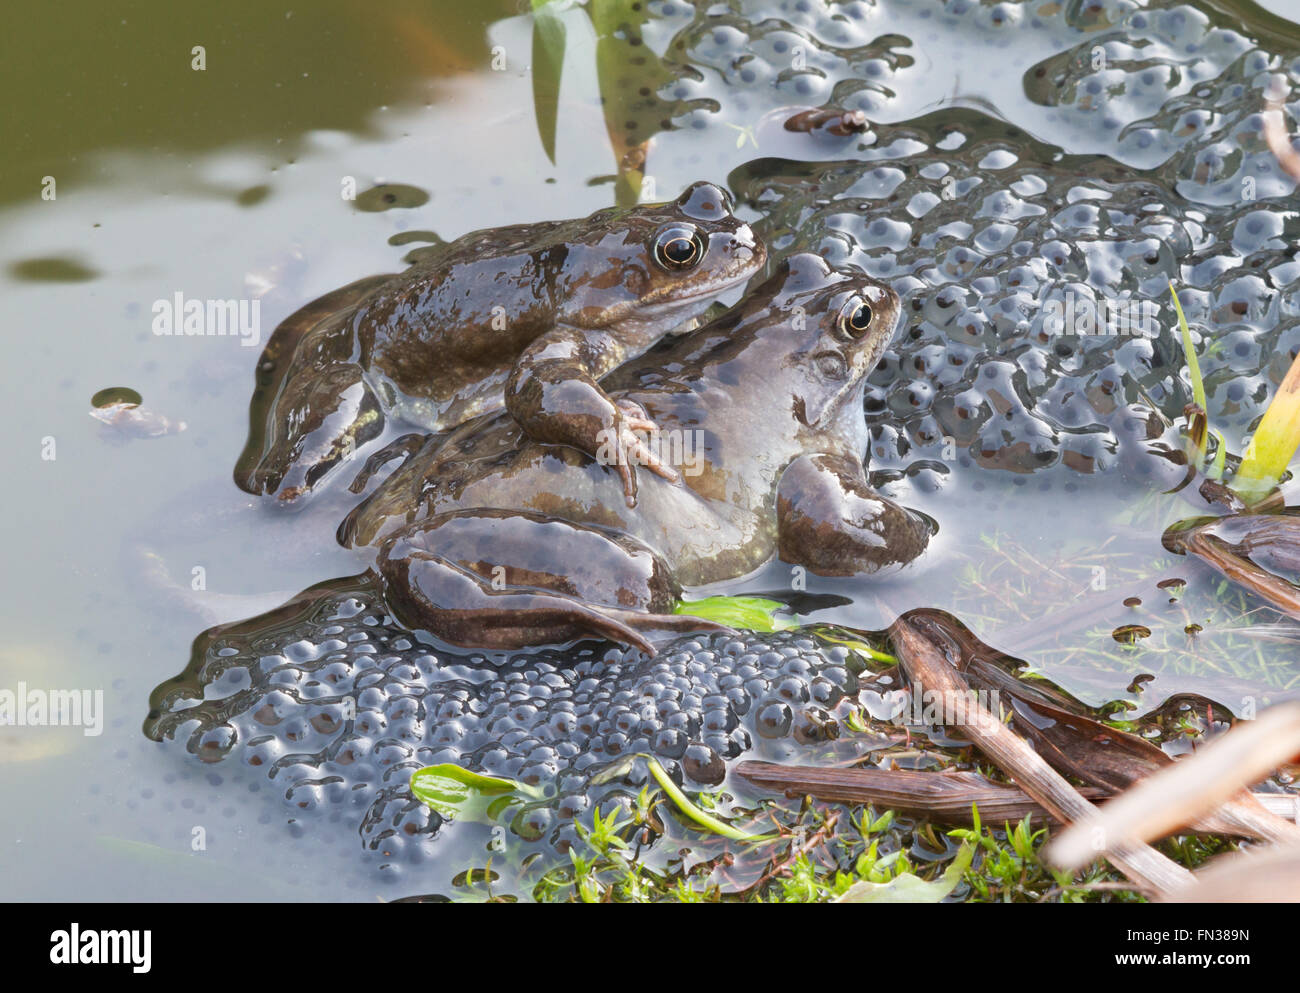 frogs-and-frog-spawn-in-garden-pond-nort